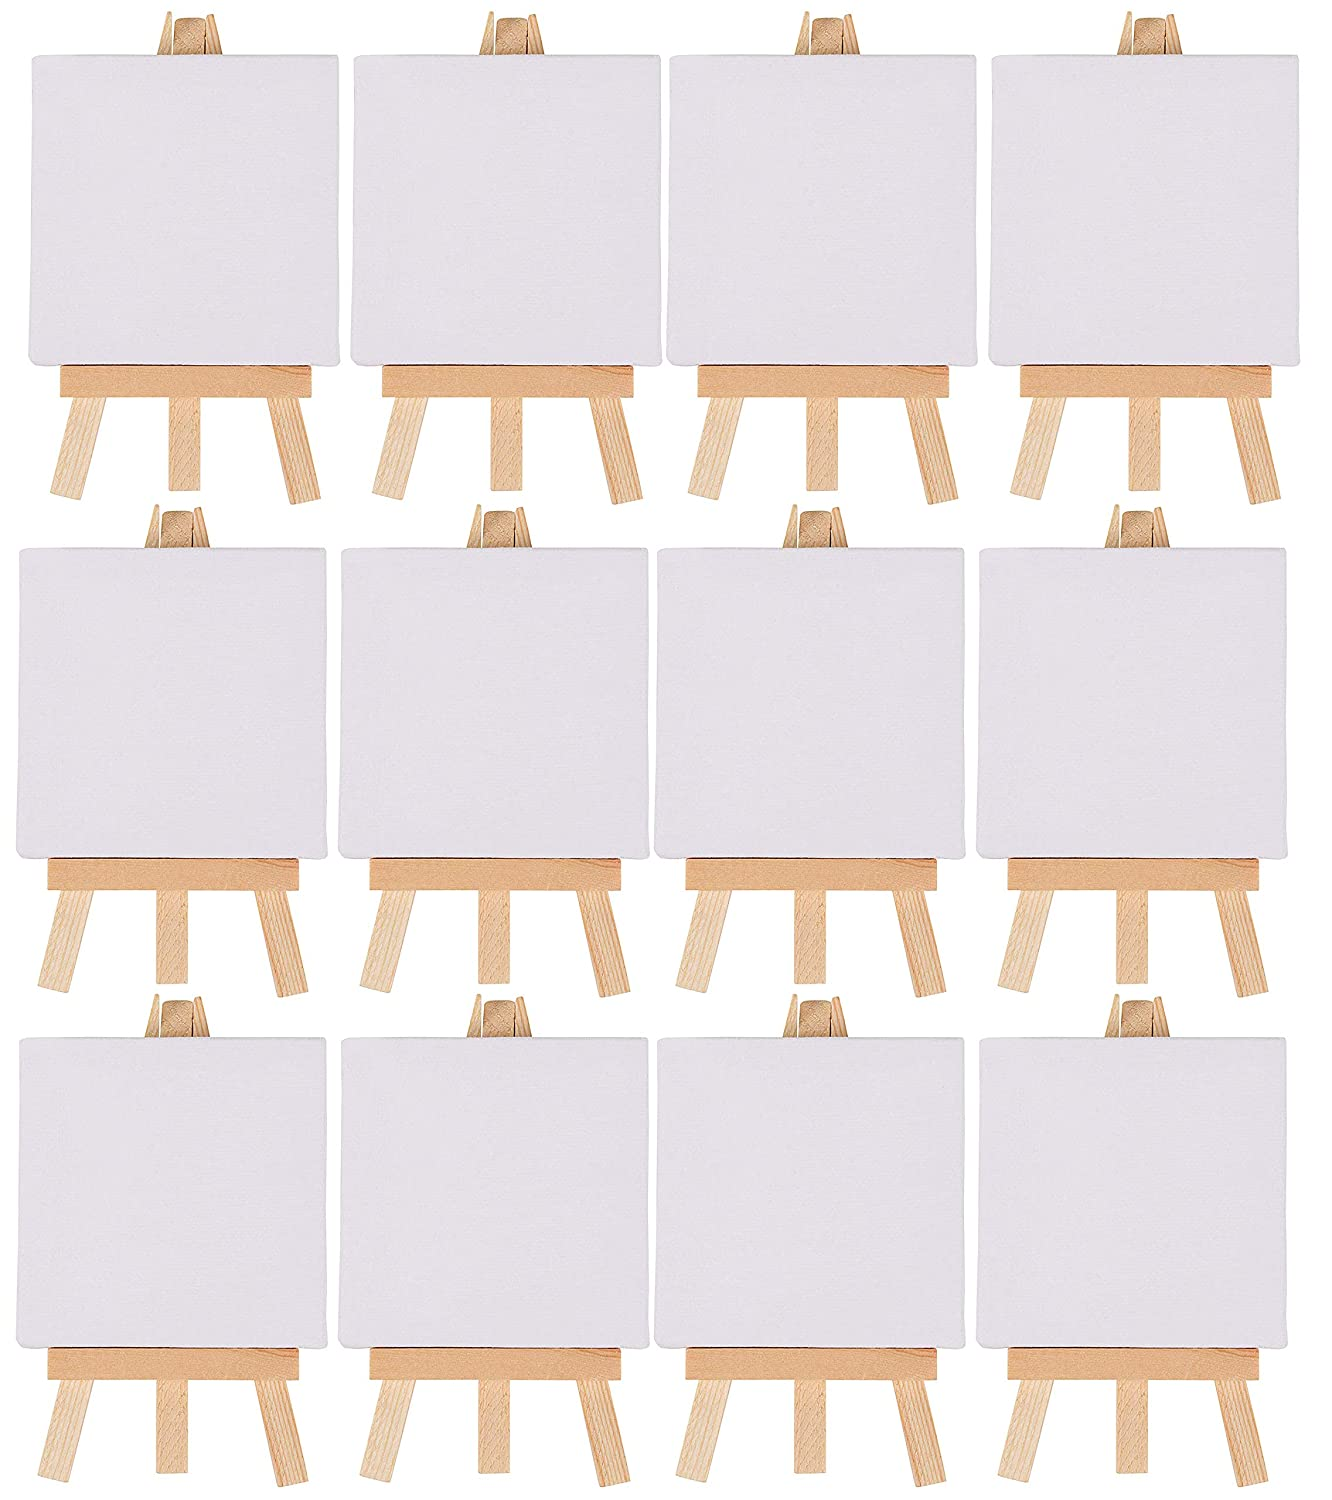 Mini canvas and easel set 12 pack mini canvas panels and wood easels small stretched canvas professional kids art supplies for drawing painting